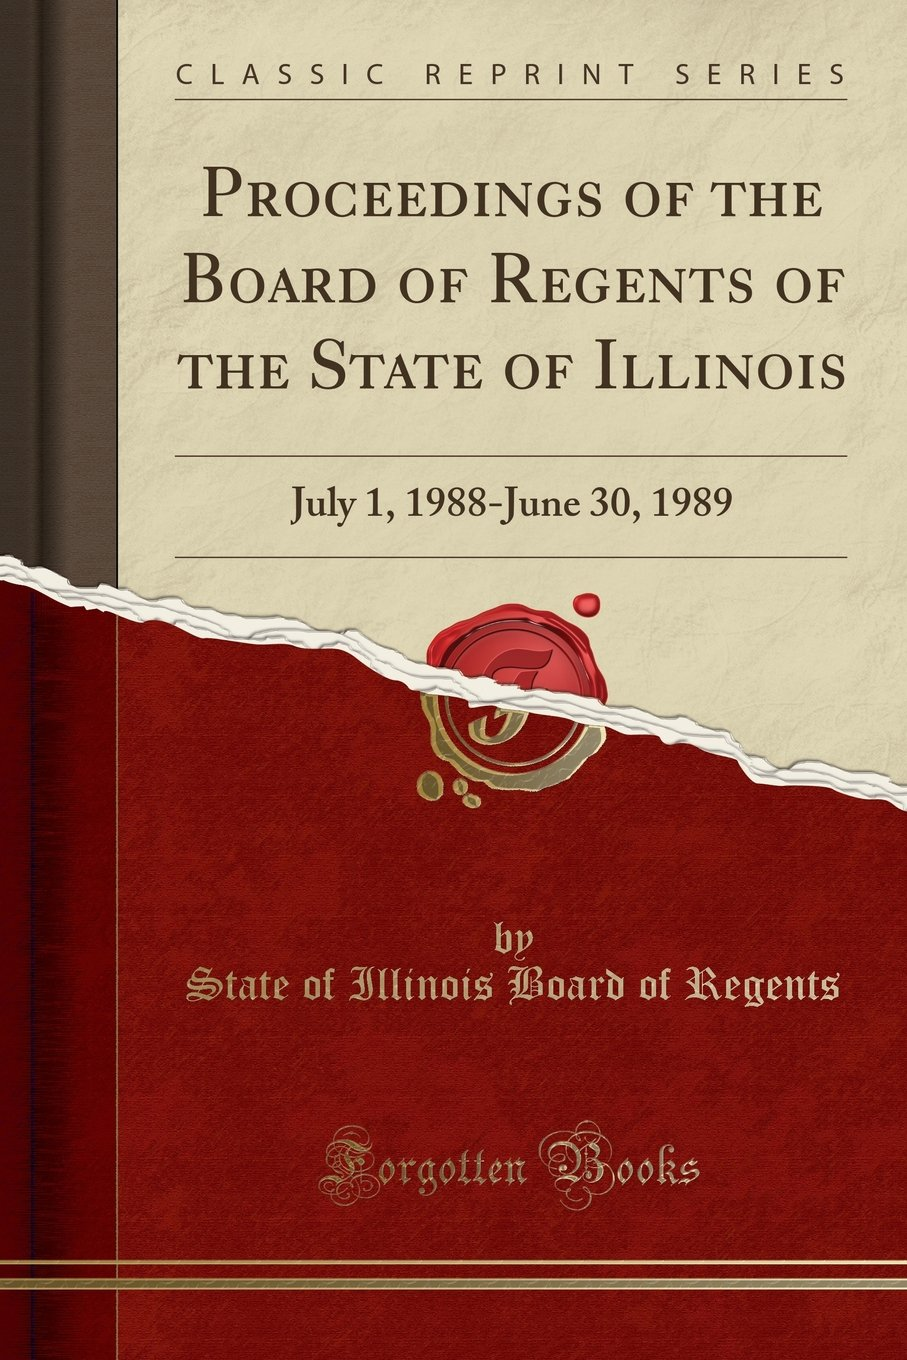 Proceedings of the Board of Regents of the State of Illinois: July 1, 1988-June 30, 1989 (Classic Reprint) ebook